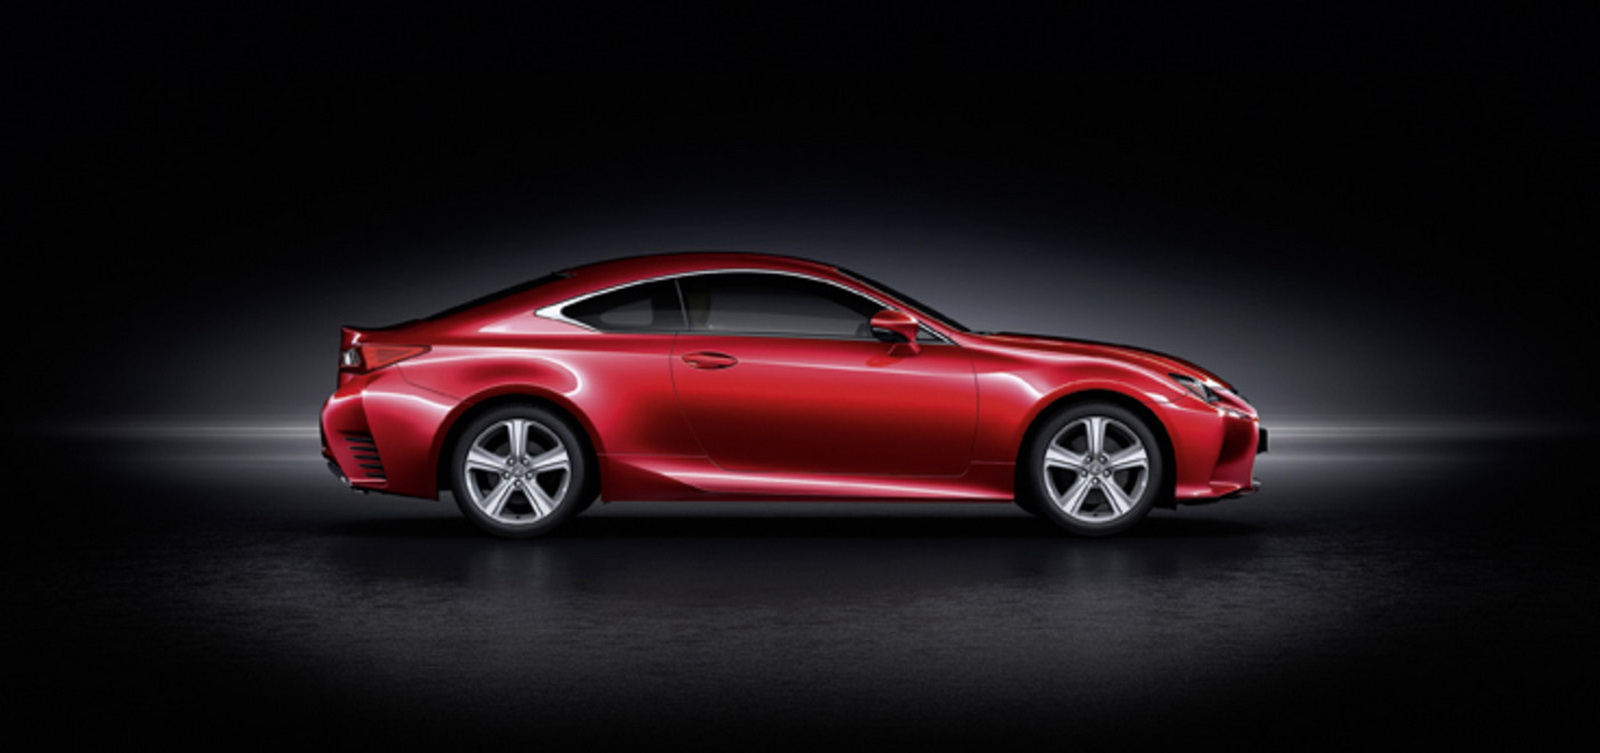 lexus rc coupe now available with 241hp turbo petrol f sport offers torsen diff carscoops. Black Bedroom Furniture Sets. Home Design Ideas